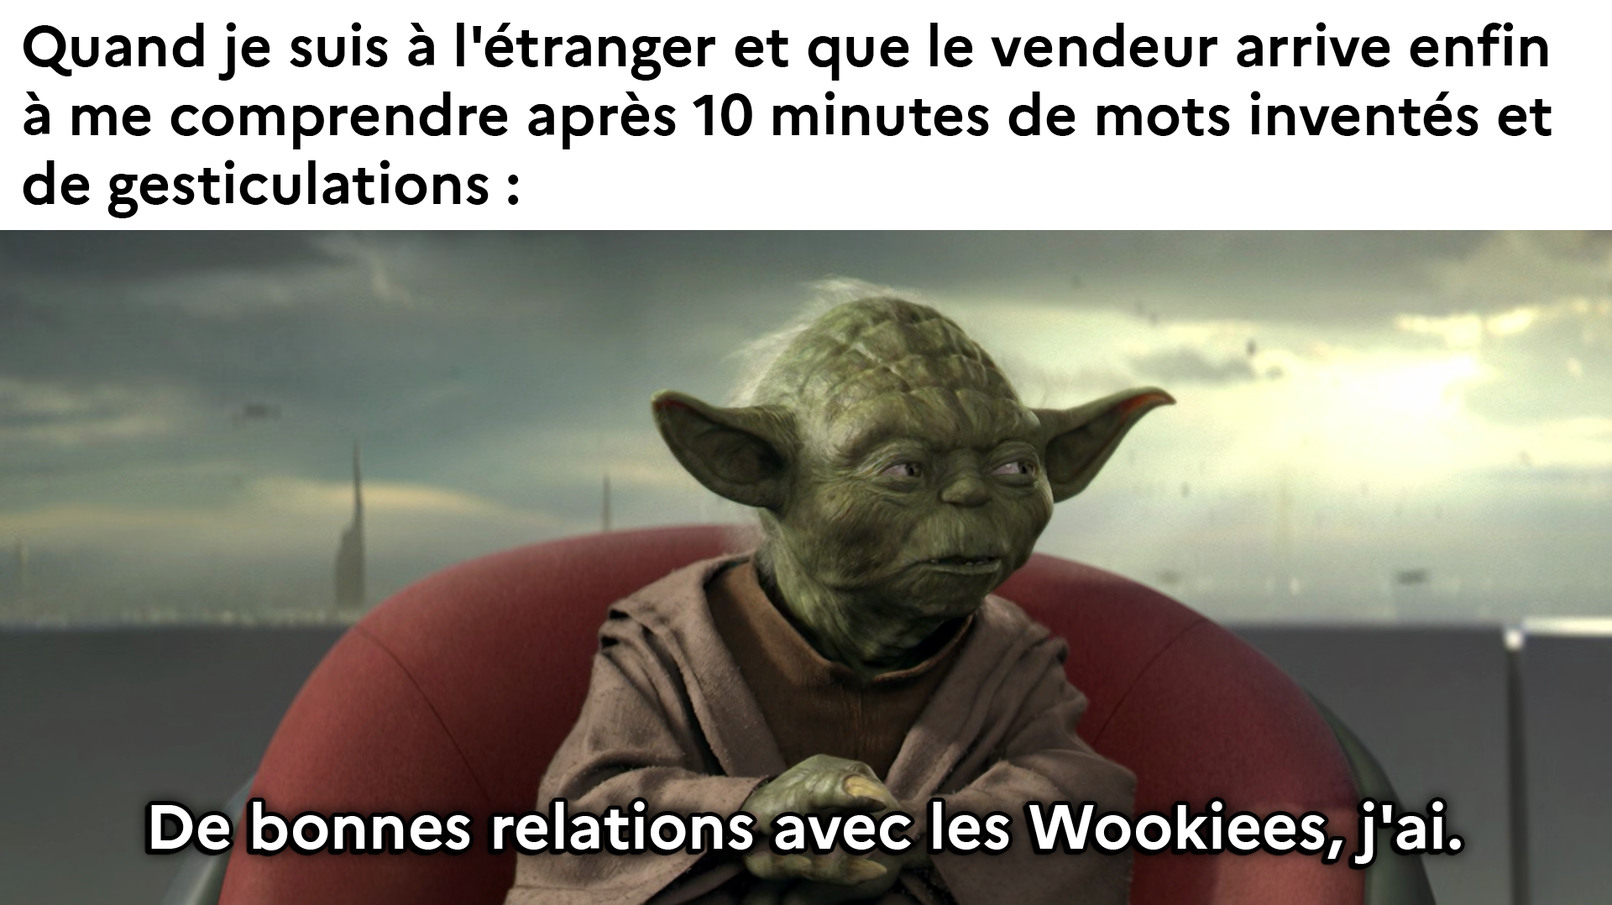 do you speak français - meme